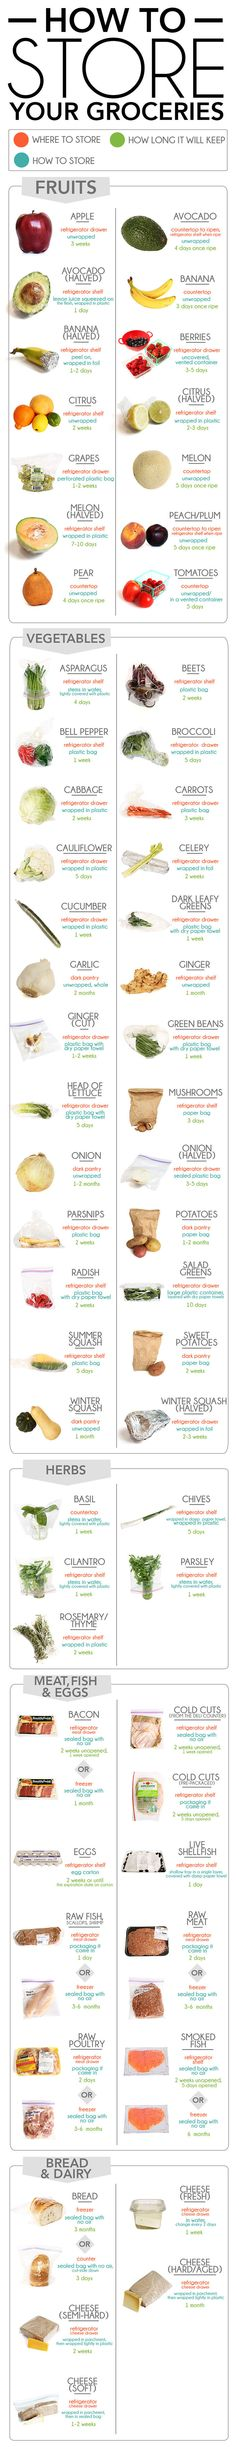 How to store groceries, infographic | FoodiesFavorites.com ★